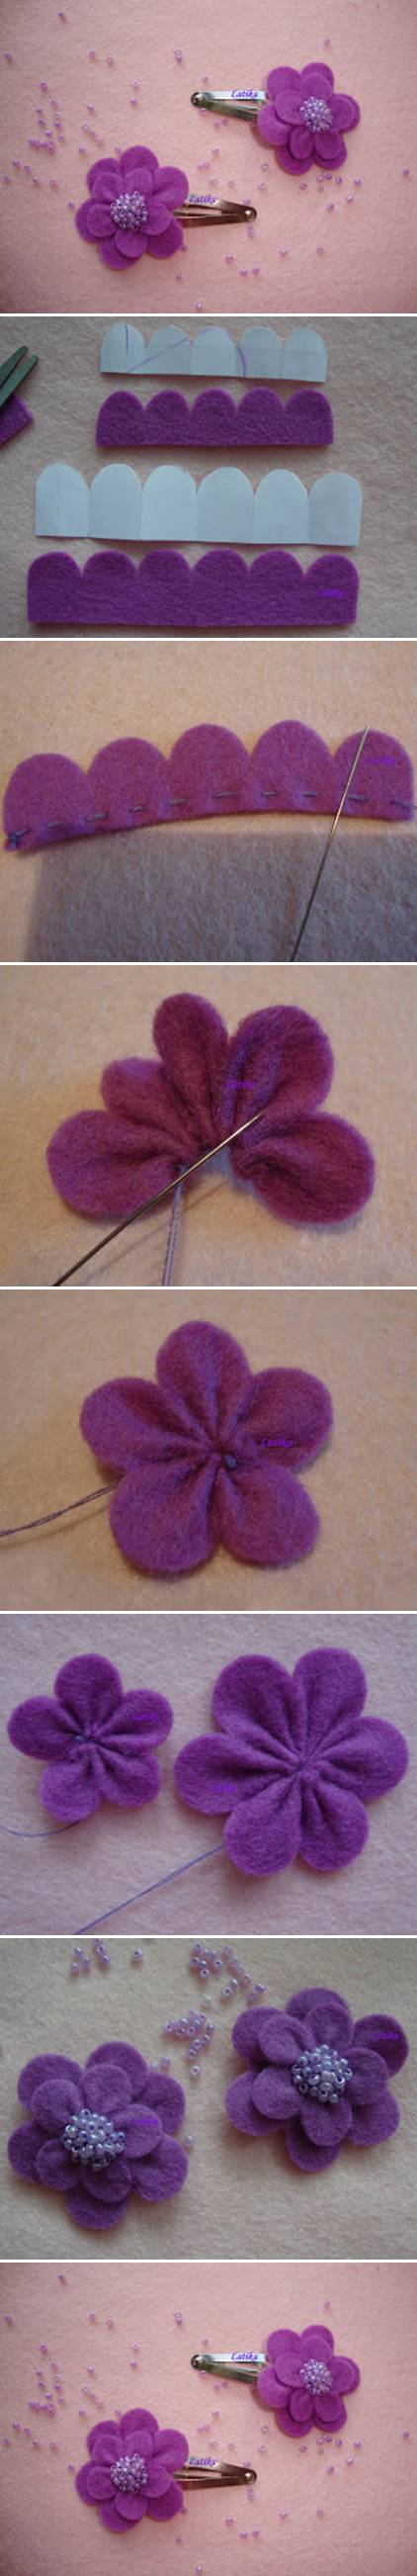 Felt flower hairclip tutorial